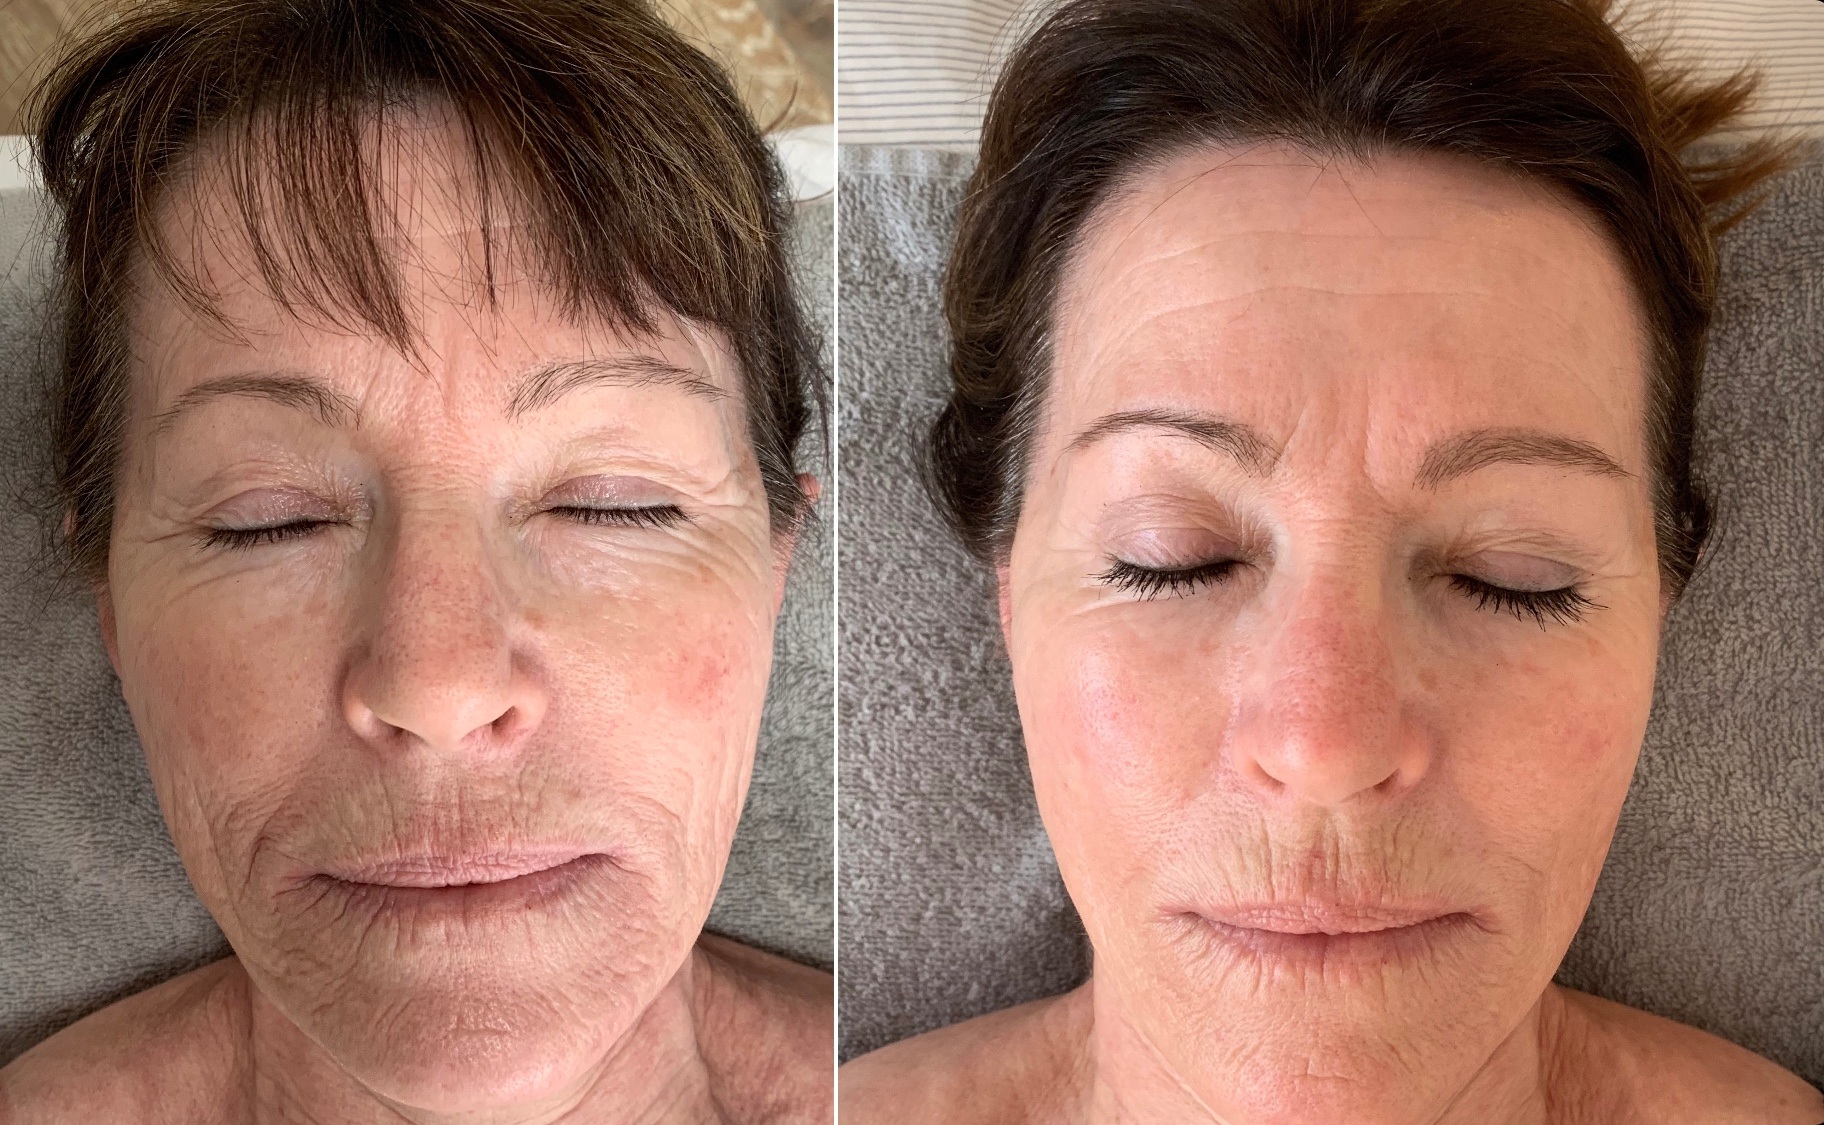 Completed 12 REJUVENATE treatments: body + face acupuncture, LED light therapy, cupping, gua sha, dermalrollling.  Main concern premature aging skin, texture, diminish severity of lines + wrinkles.